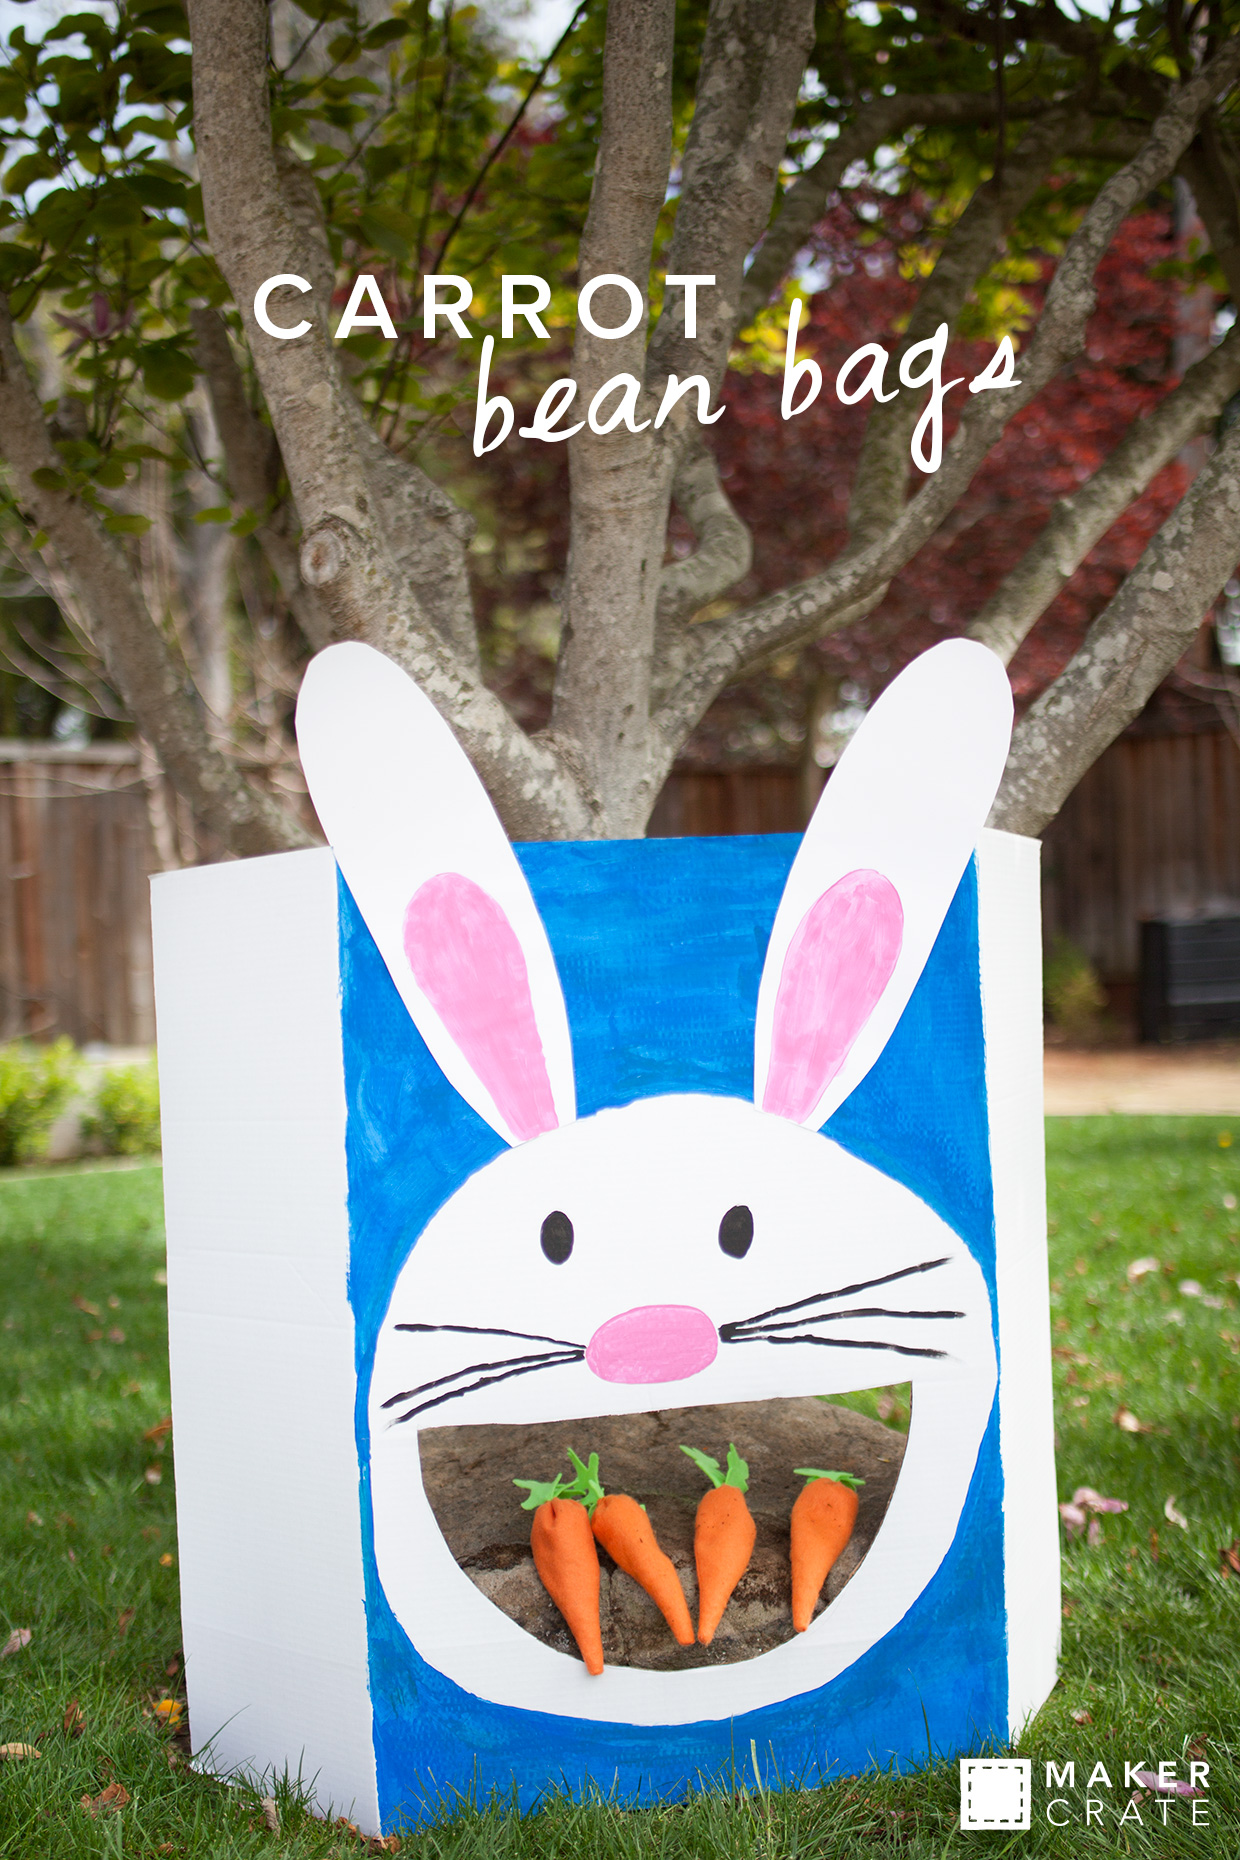 Carrot Bean Bag Maker Crate